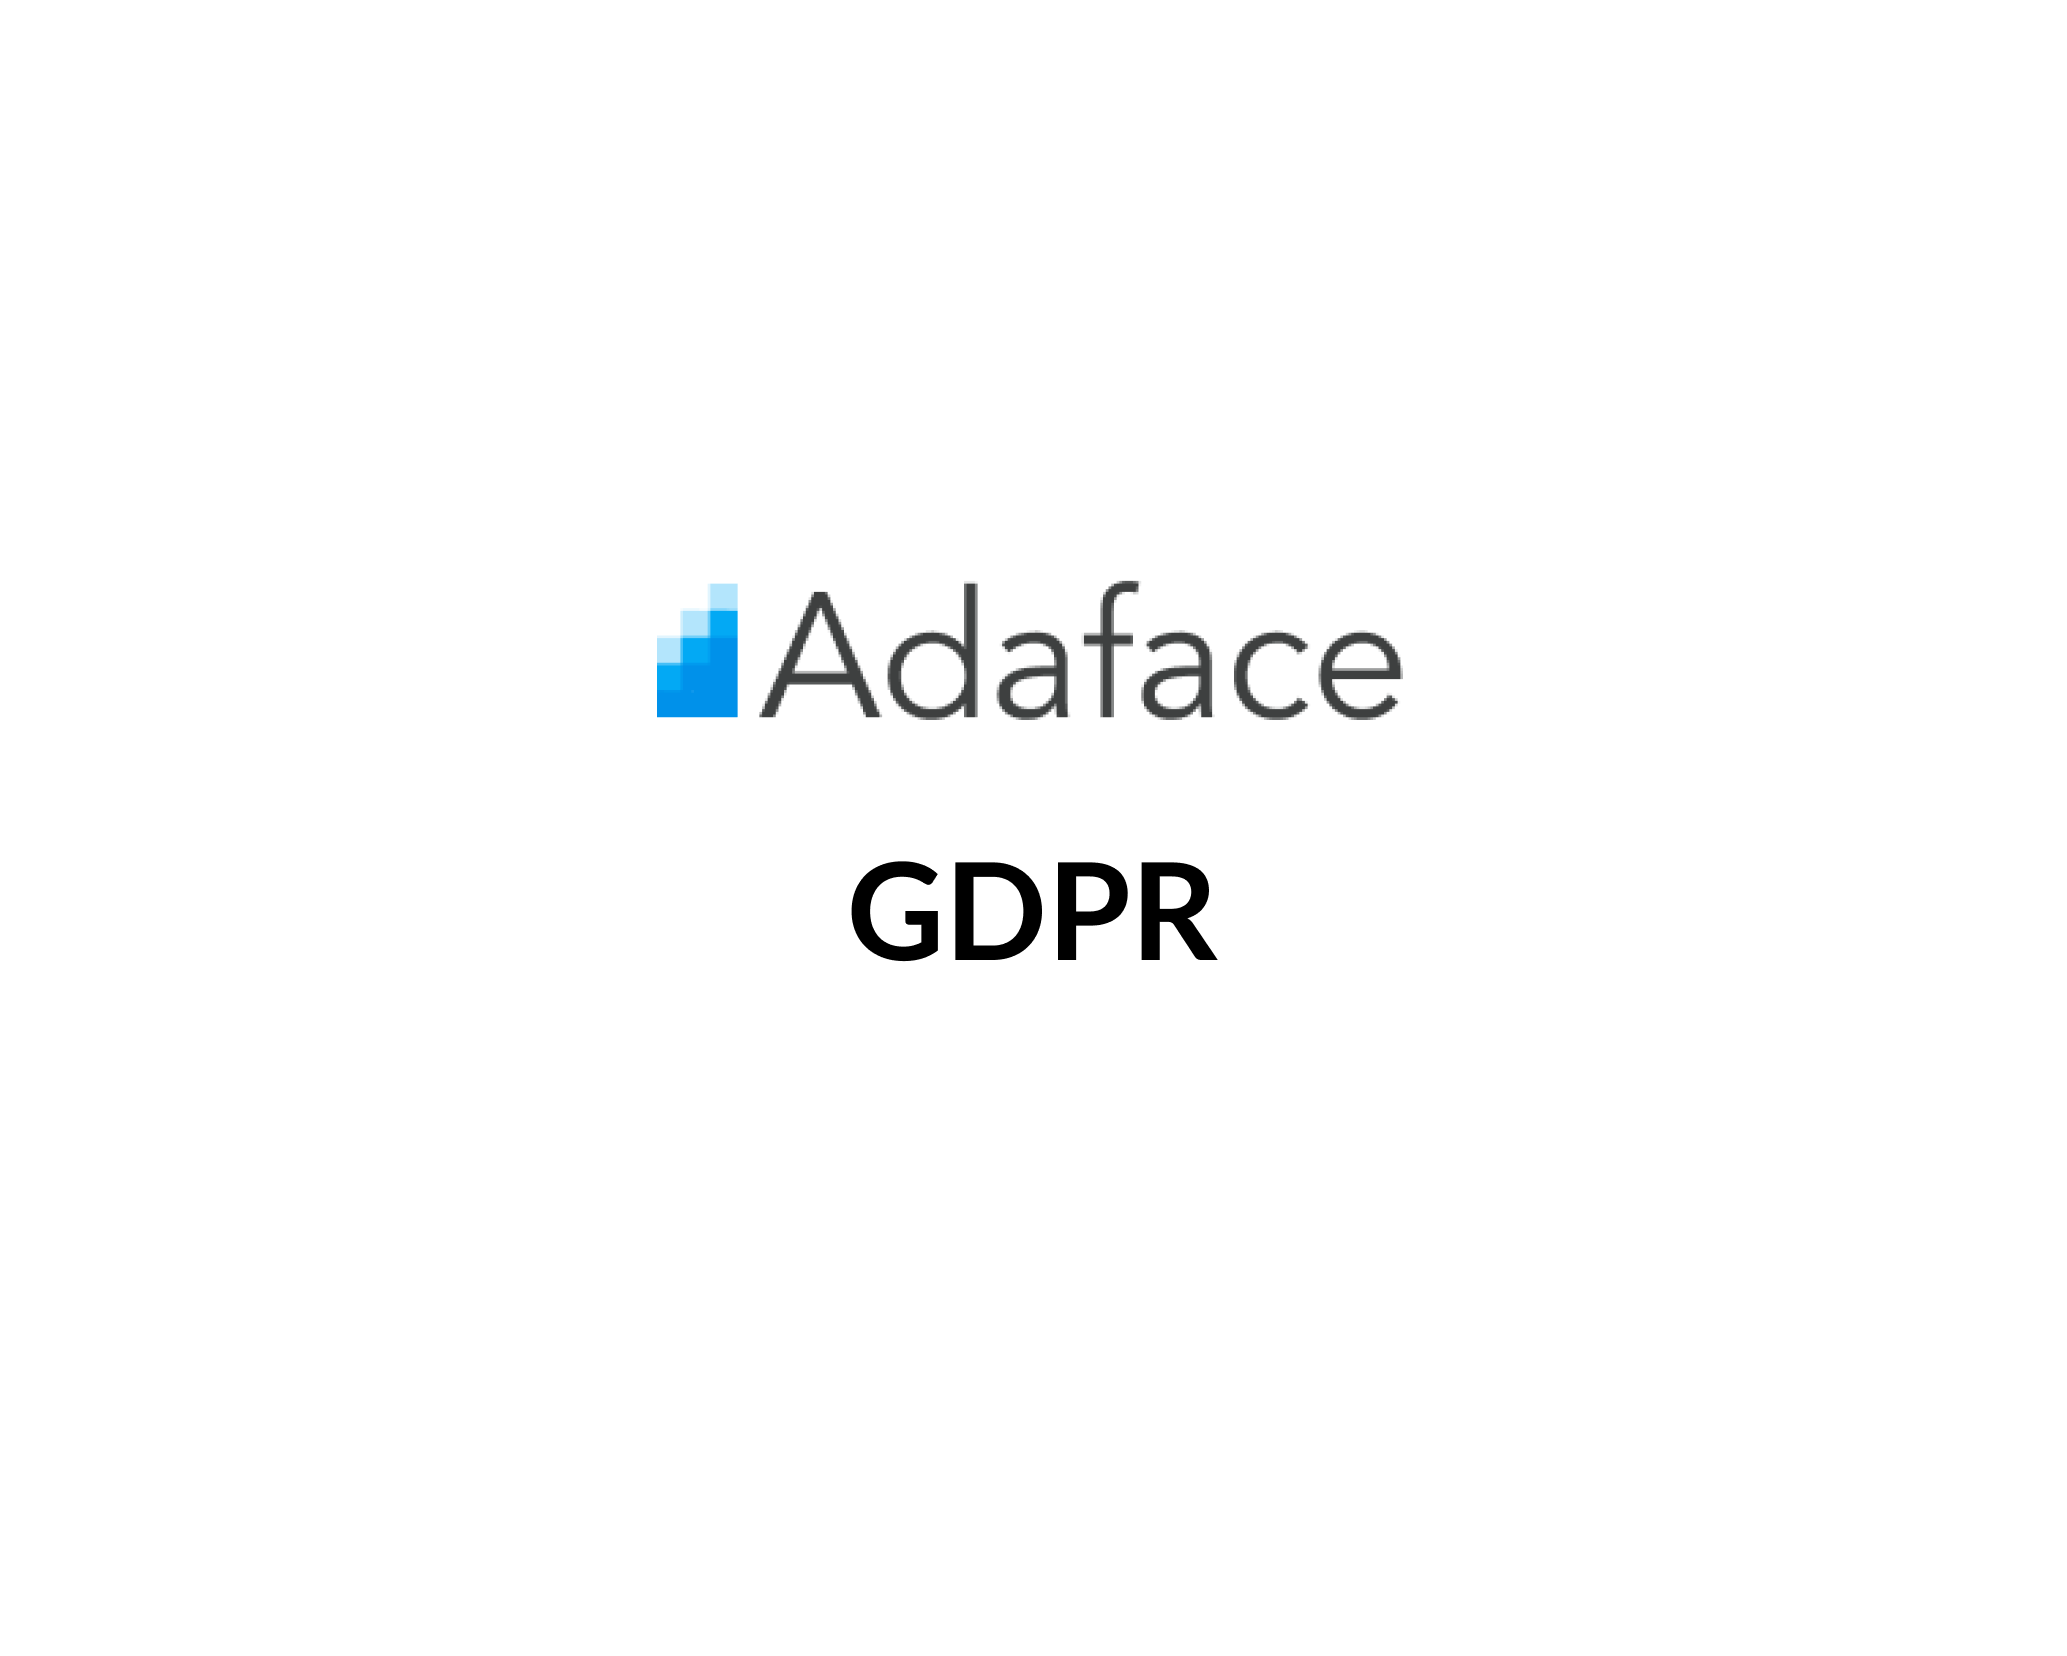 Adaface GDPR Information image